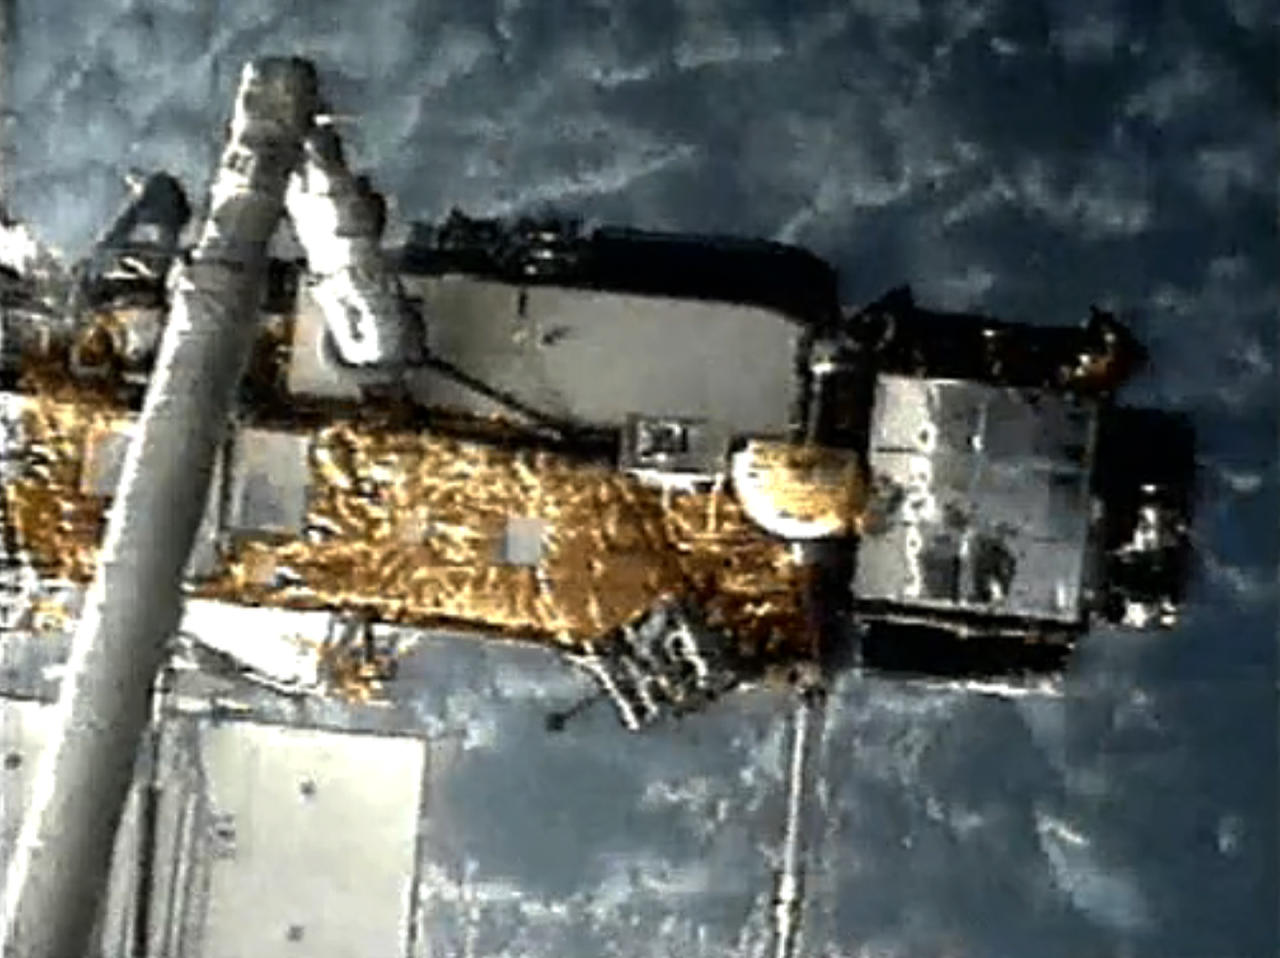 This screen grab image provided by NASA shows UARS attached to the robotic arm of the space shuttle Discovery during mission STS-48 in 1991, when UARS was deployed. NASA scientists are doing their best to tell us where a plummeting 6-ton satellite will fall later this week. It's just that if they're off a little bit, it could mean the difference between hitting Florida or New York. Or, say, Iran or India. (AP Photo/NASA)